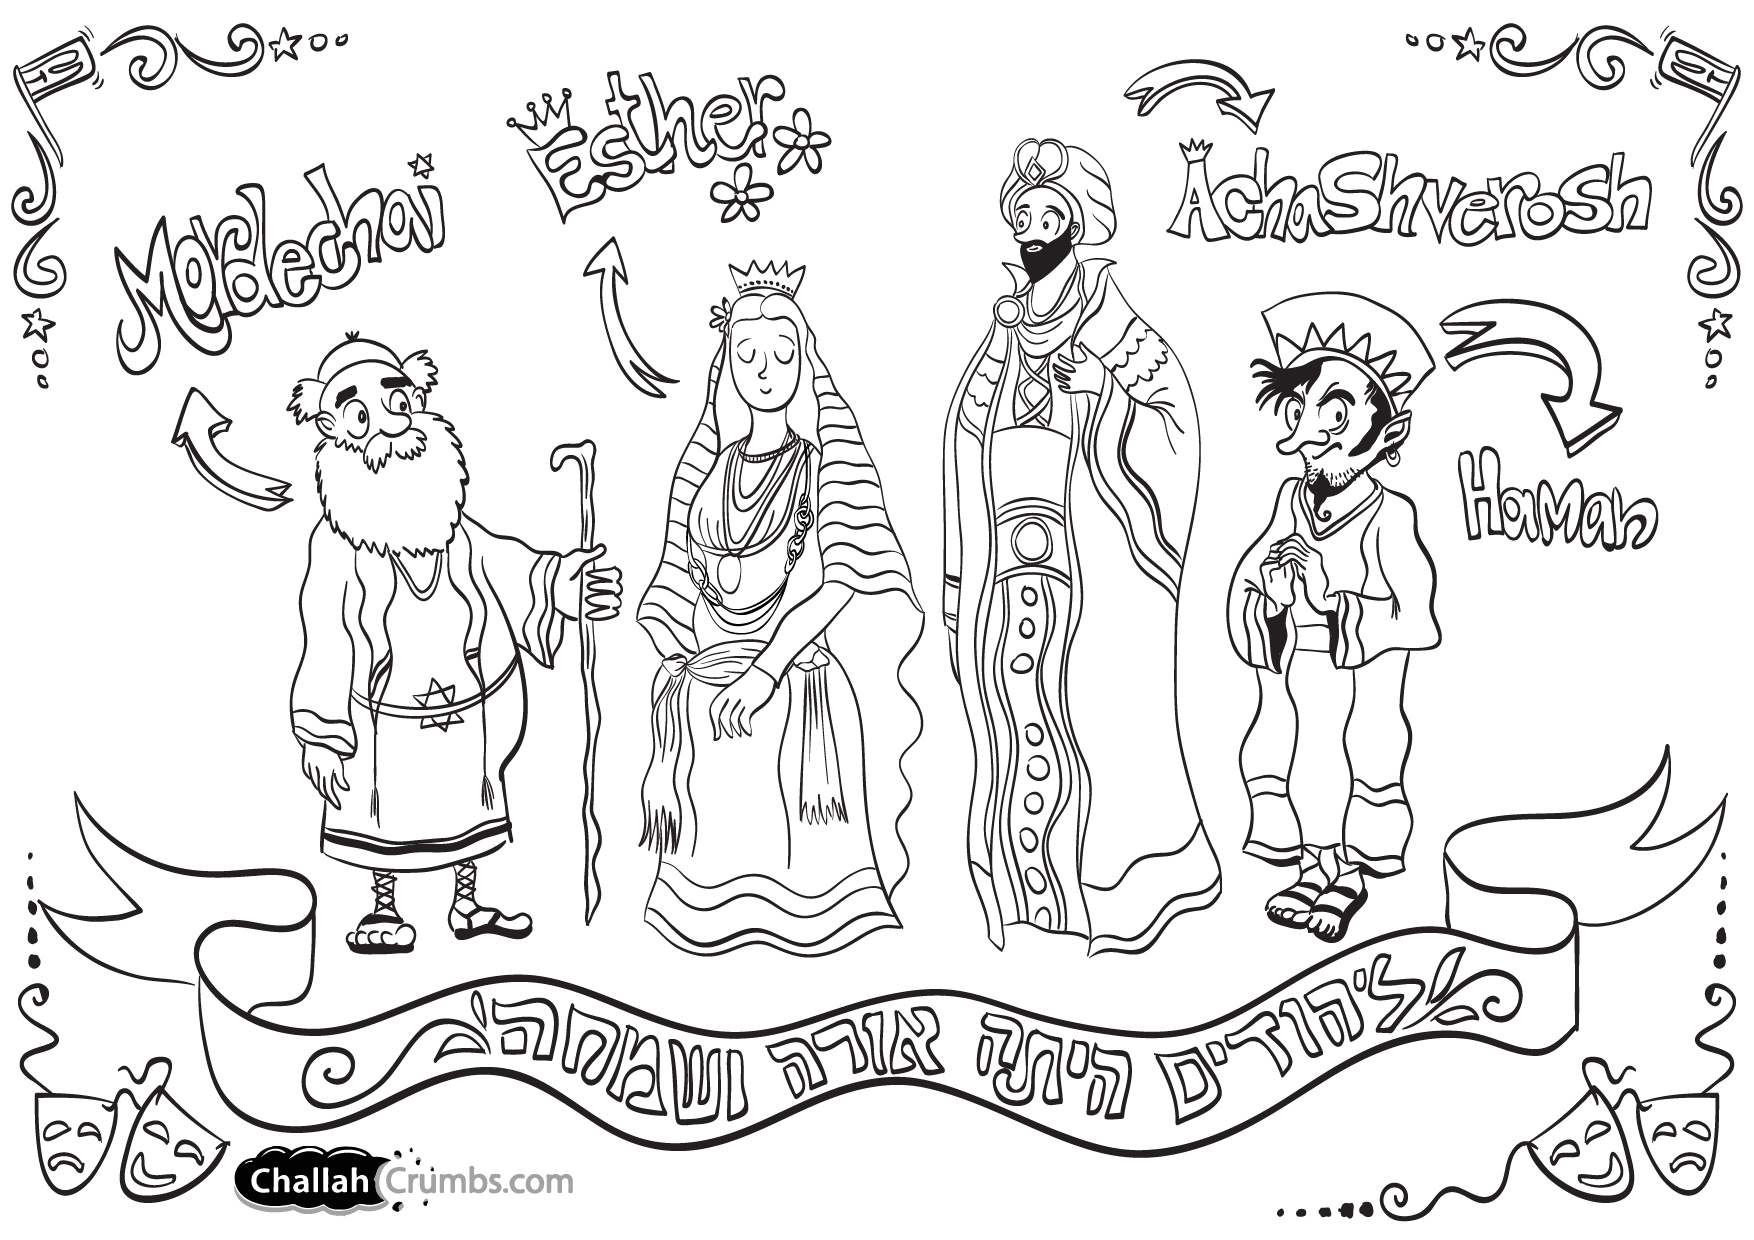 fabulous purim coloring page challah crumbs